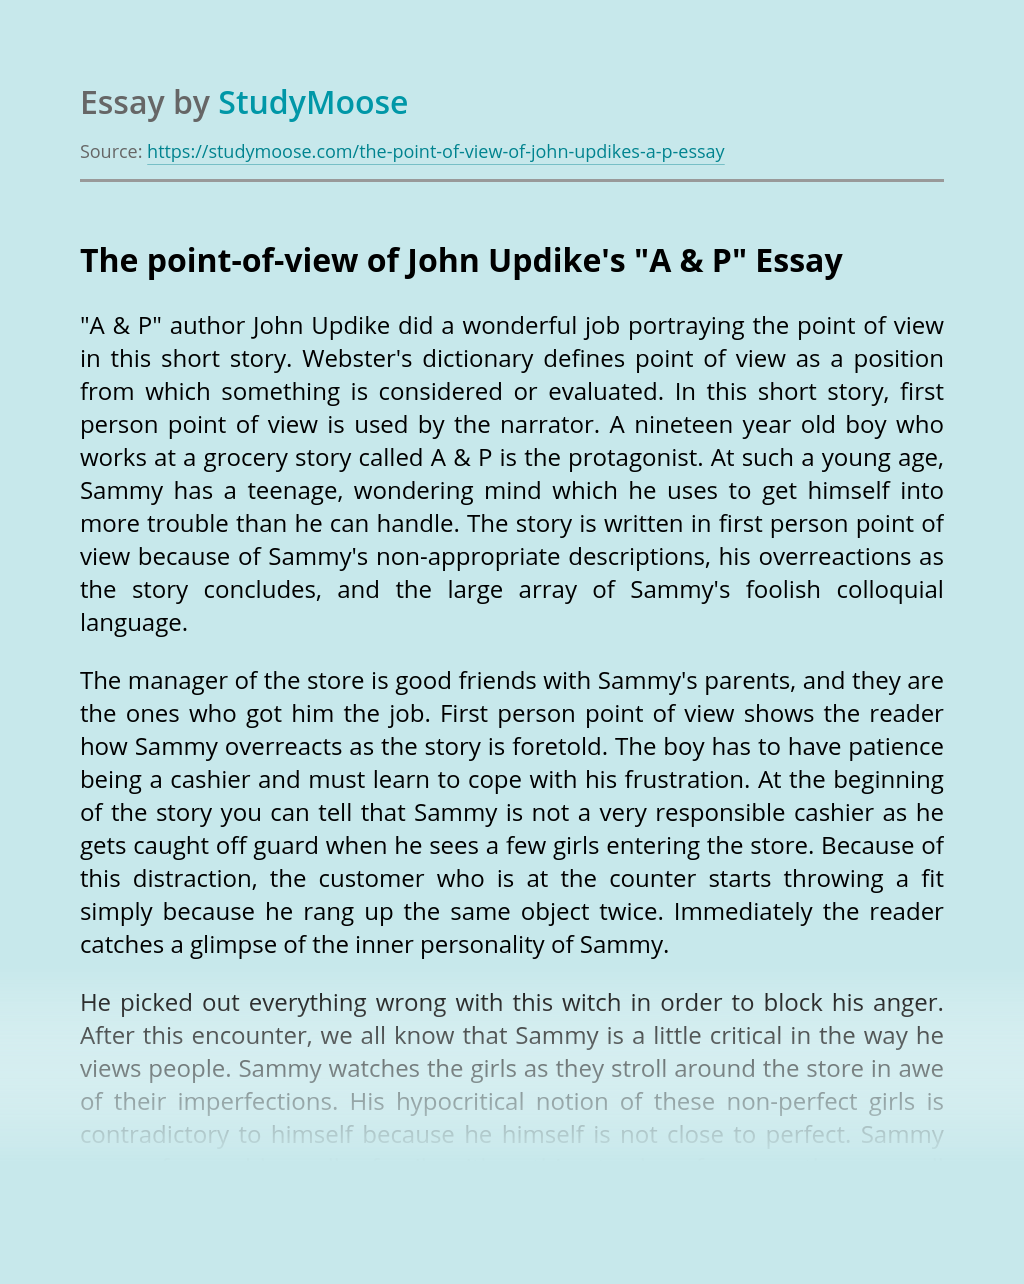 """The point-of-view of John Updike's """"A & P"""""""